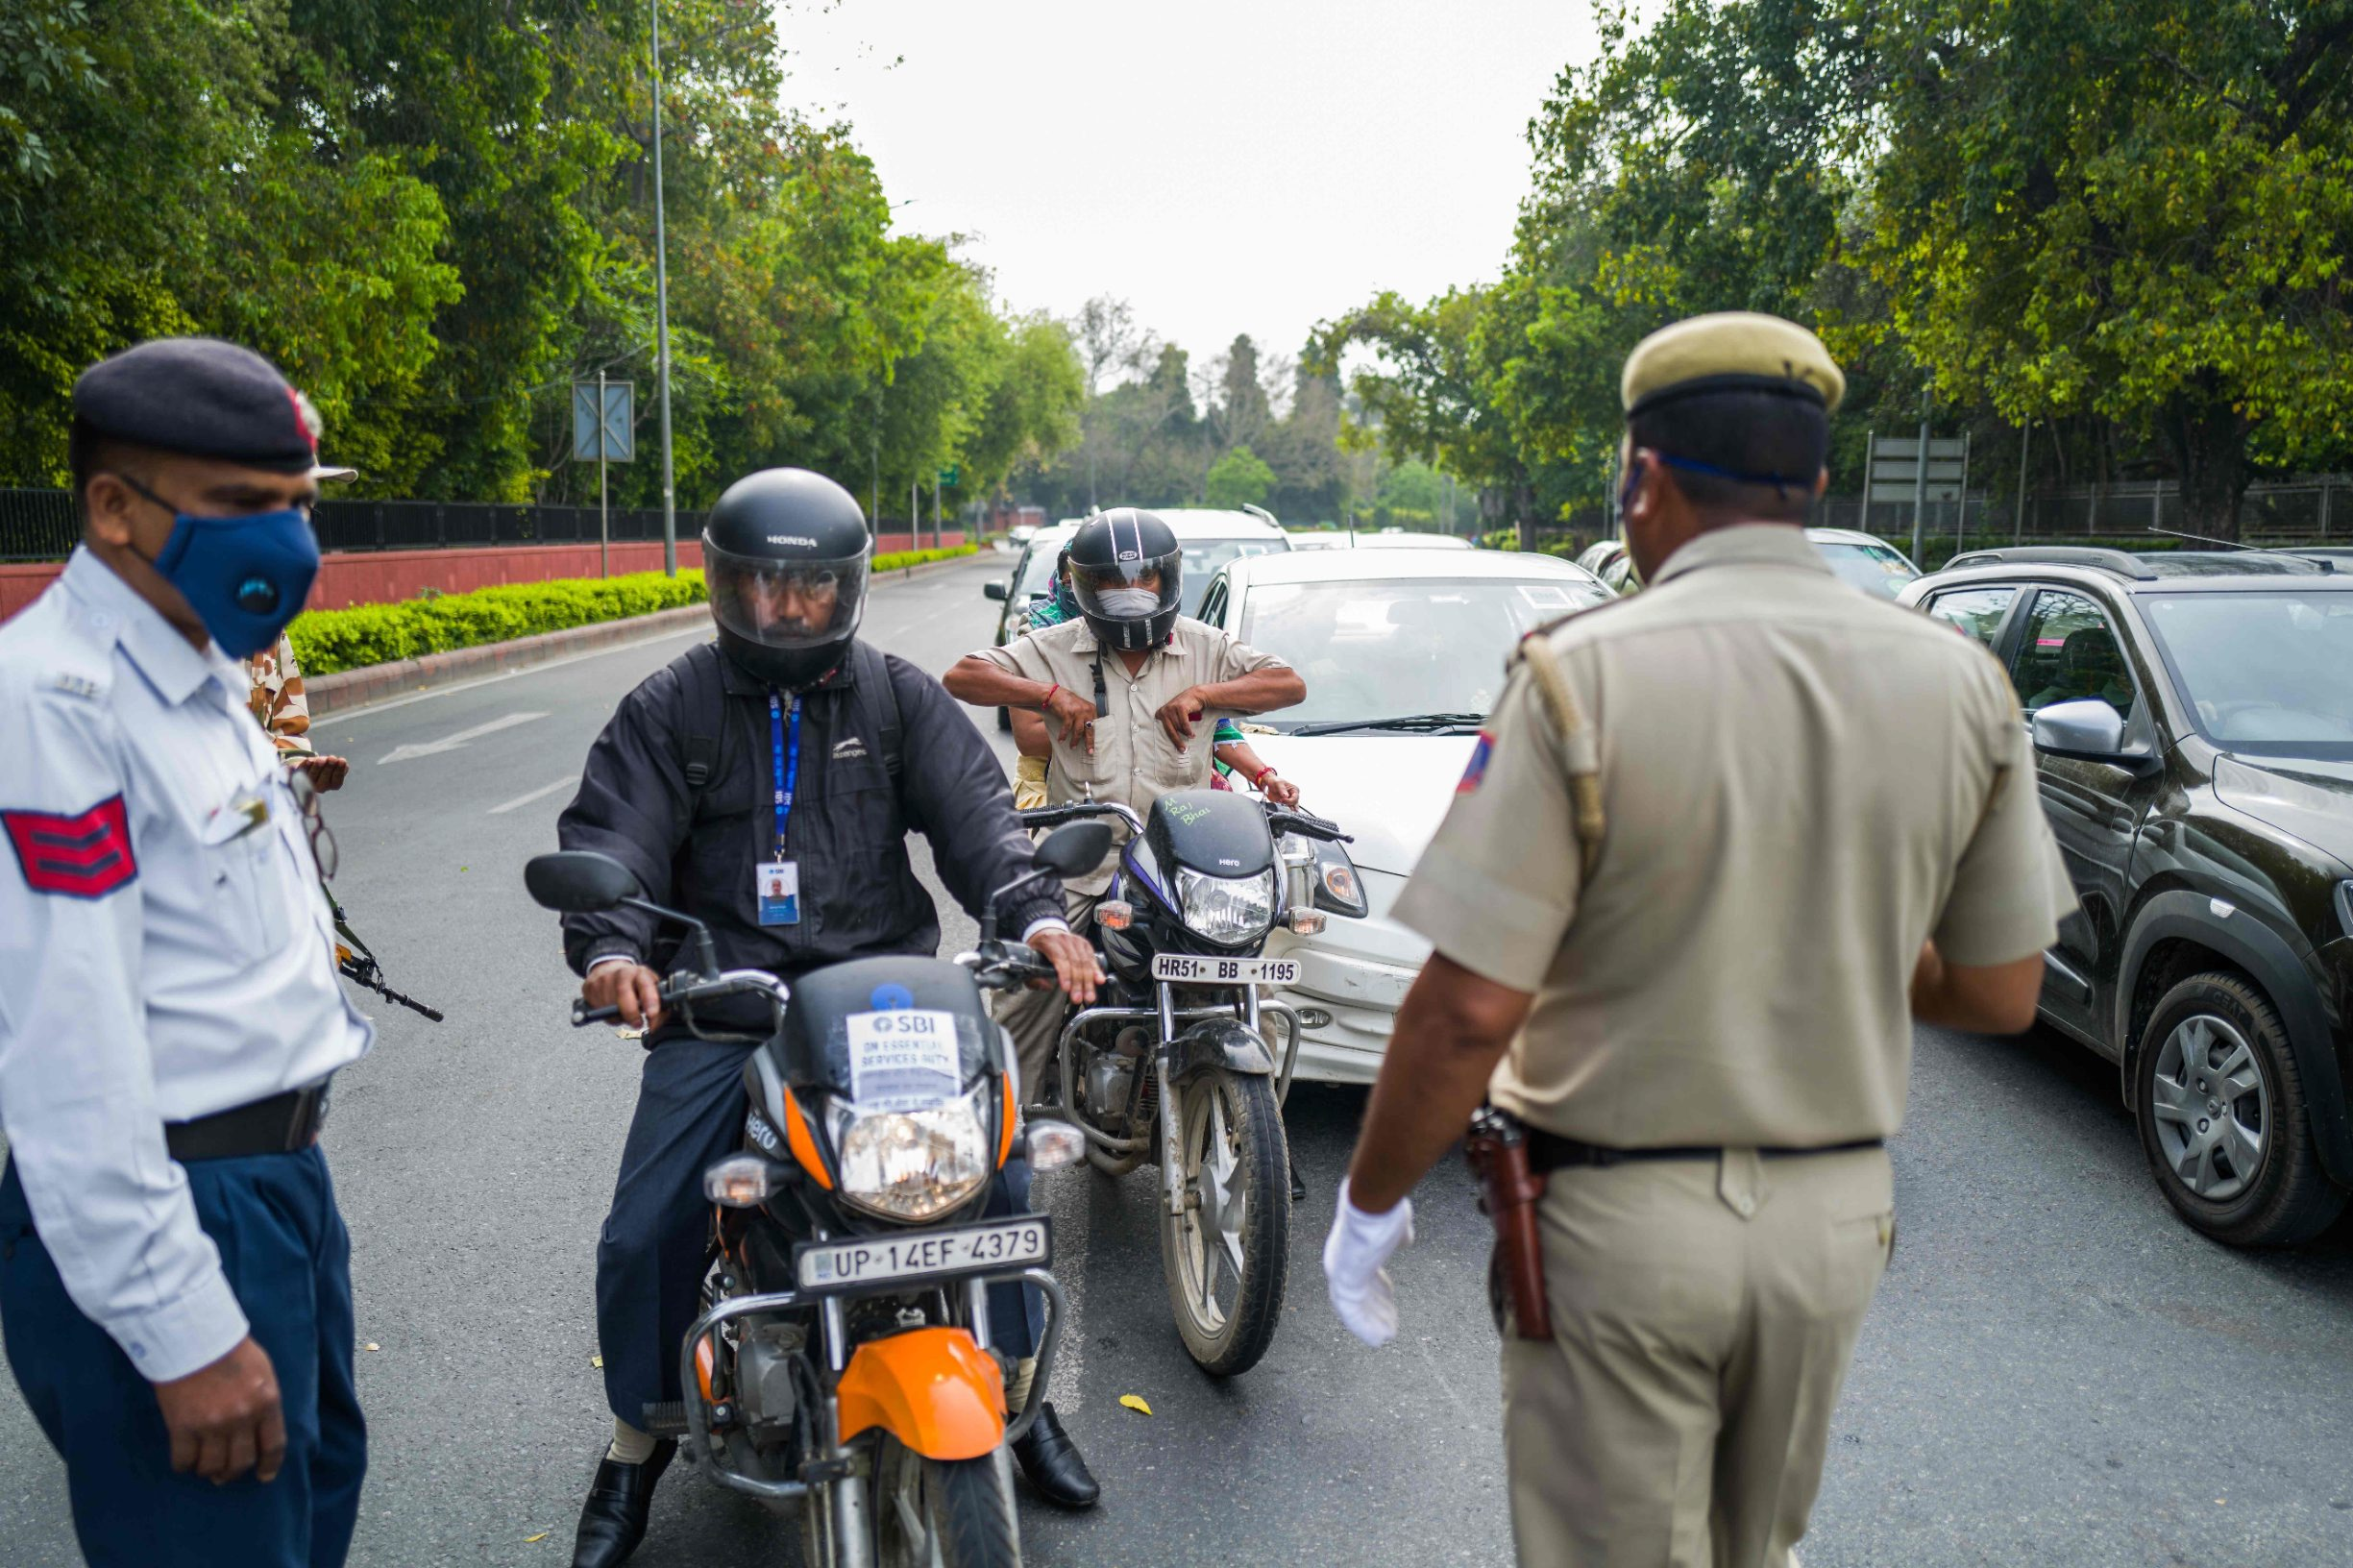 Police check motorists at a checkpoint during a government-imposed nationwide lockdown as a preventive measure against the COVID-19 coronavirus in New Delhi on March 26, 2020. (Photo by Jewel SAMAD / AFP)